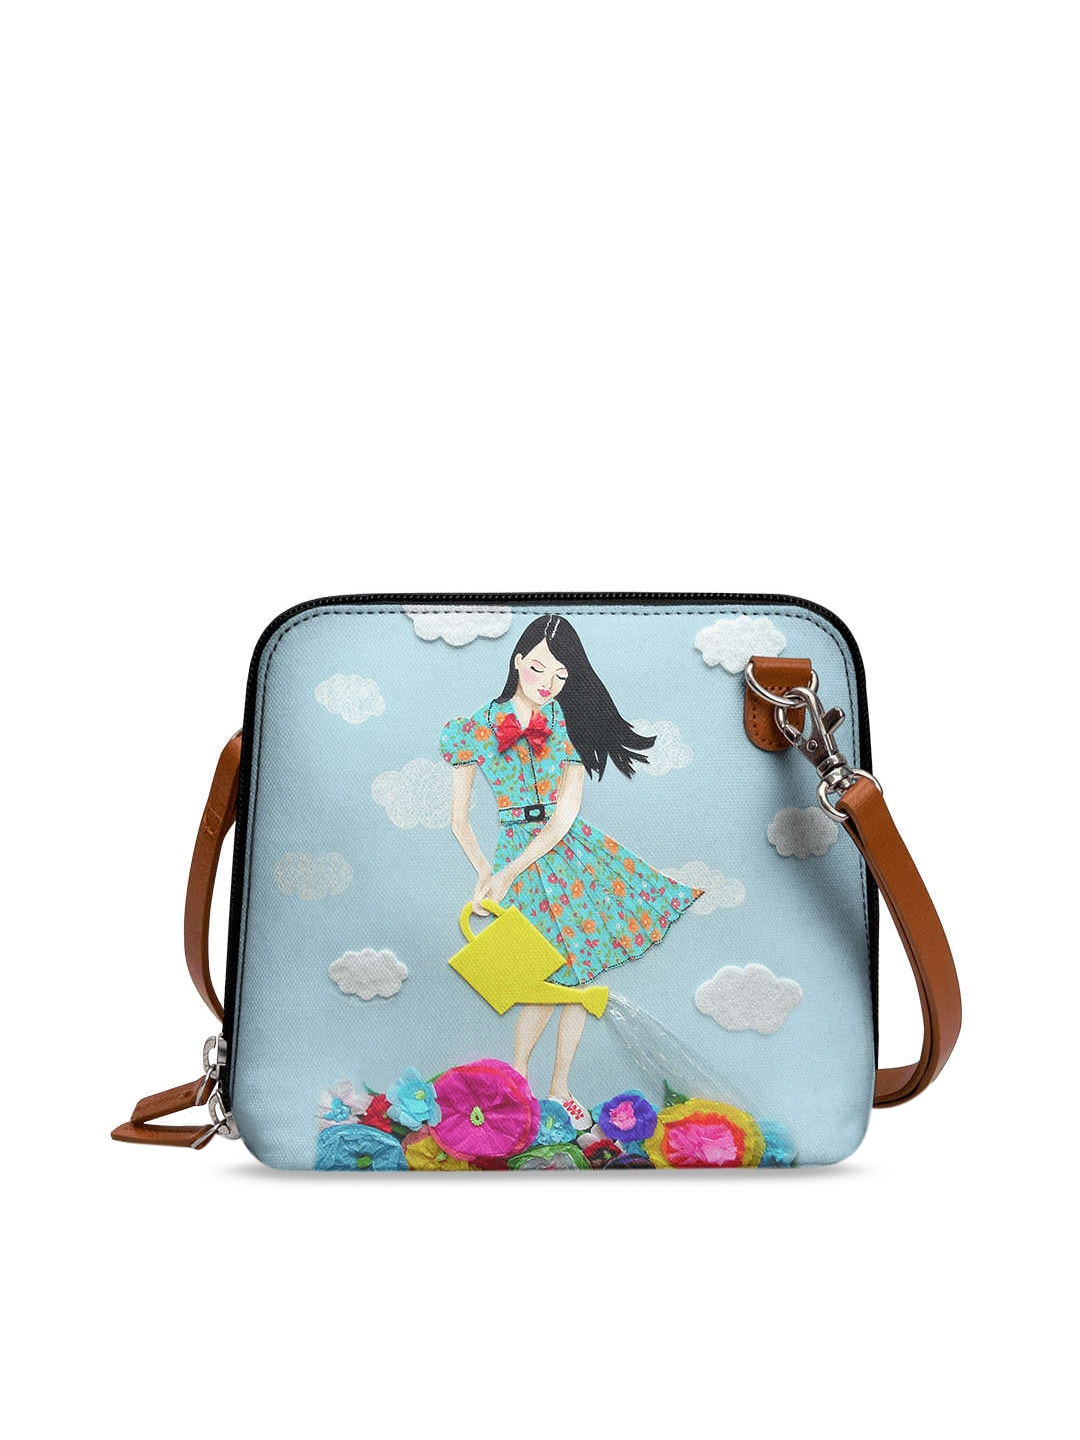 53b0a5700087 Bags Online - Buy Bags for men and Women Online in India